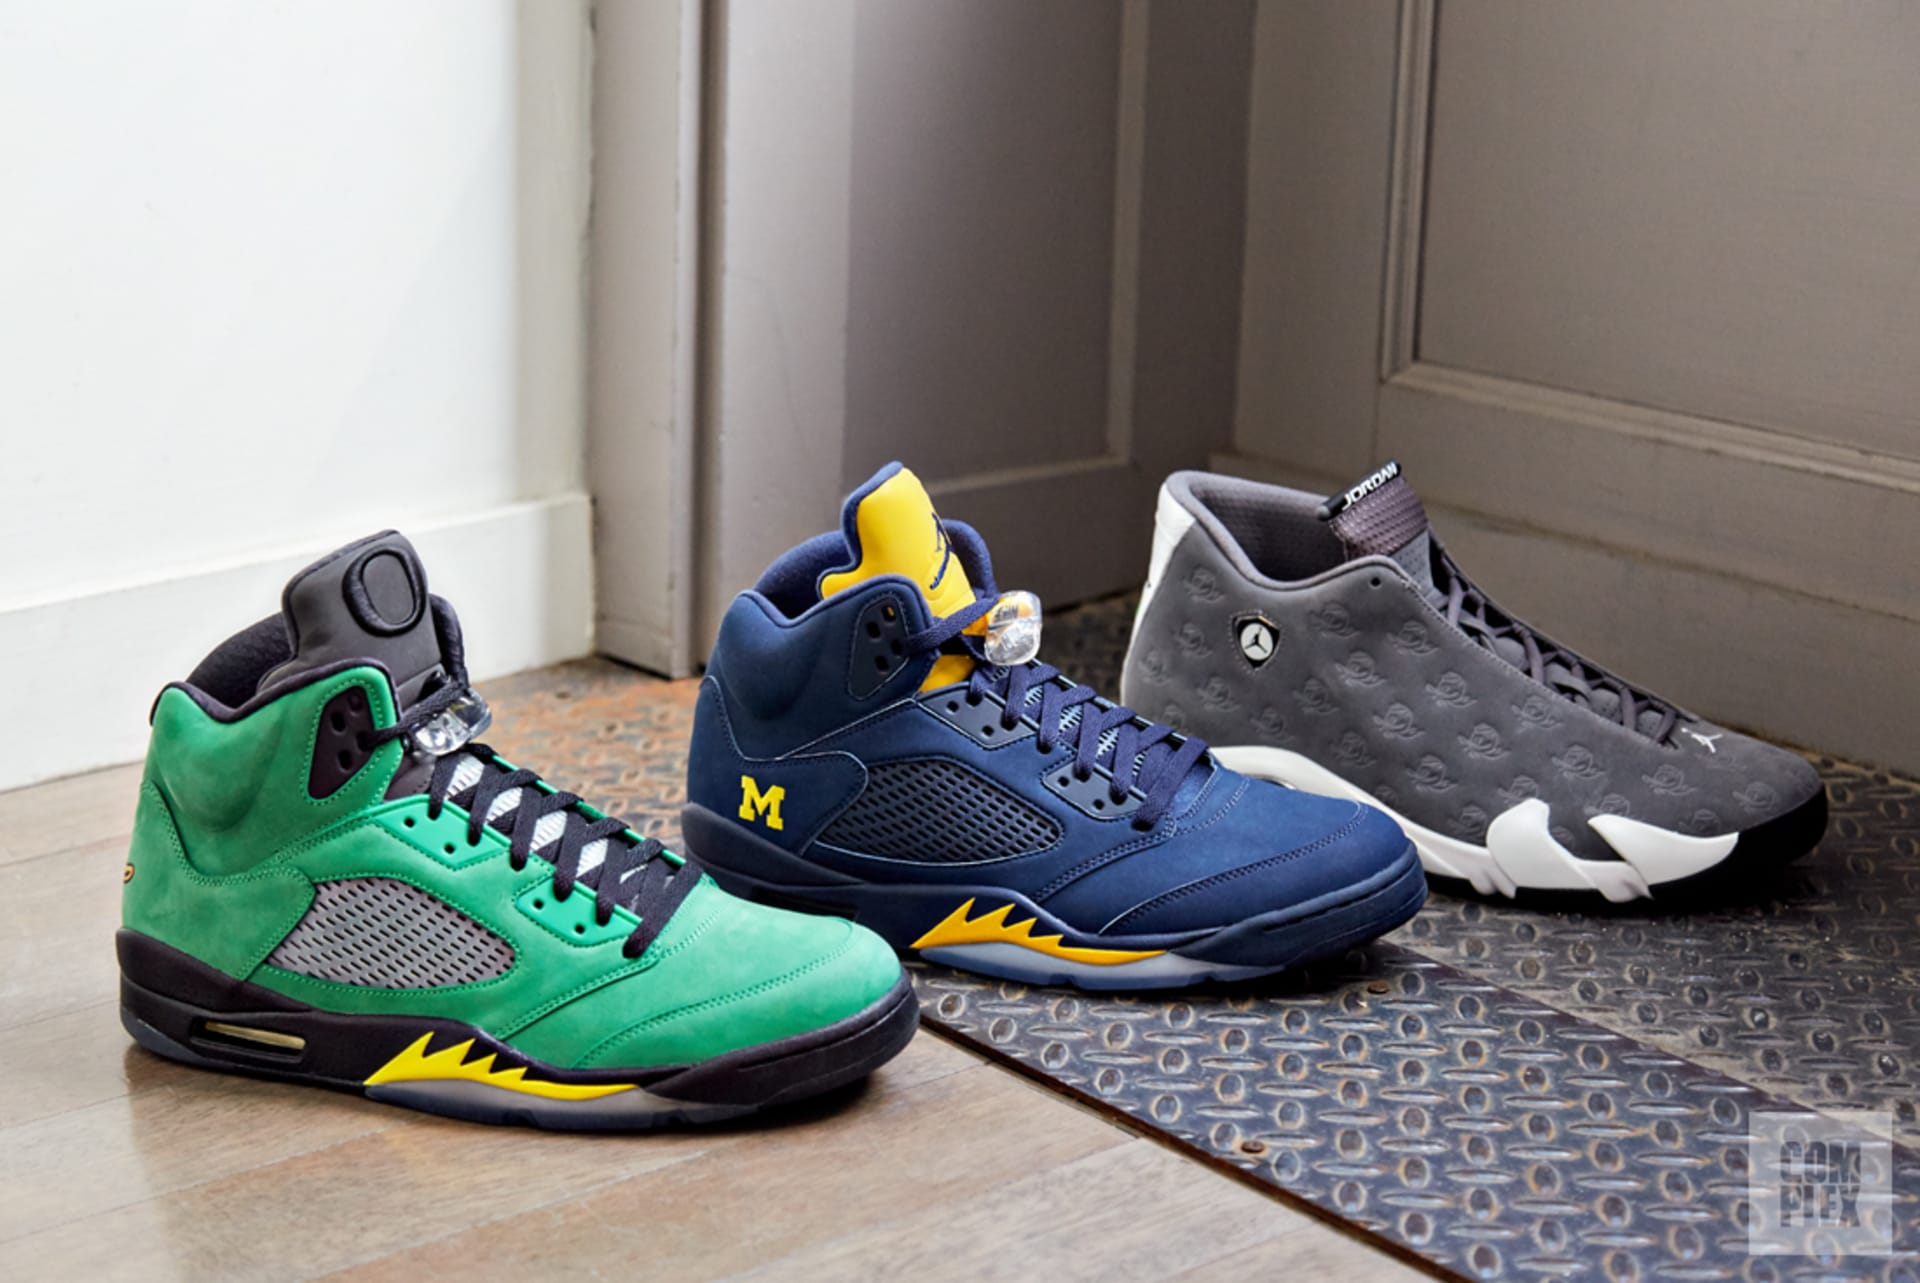 28cccf635a36 Air Jordan PEs made for the University of Oregon and Michigan. Sneakers  courtesy of Stadium Goods. Image via Complex Original David Cabrera